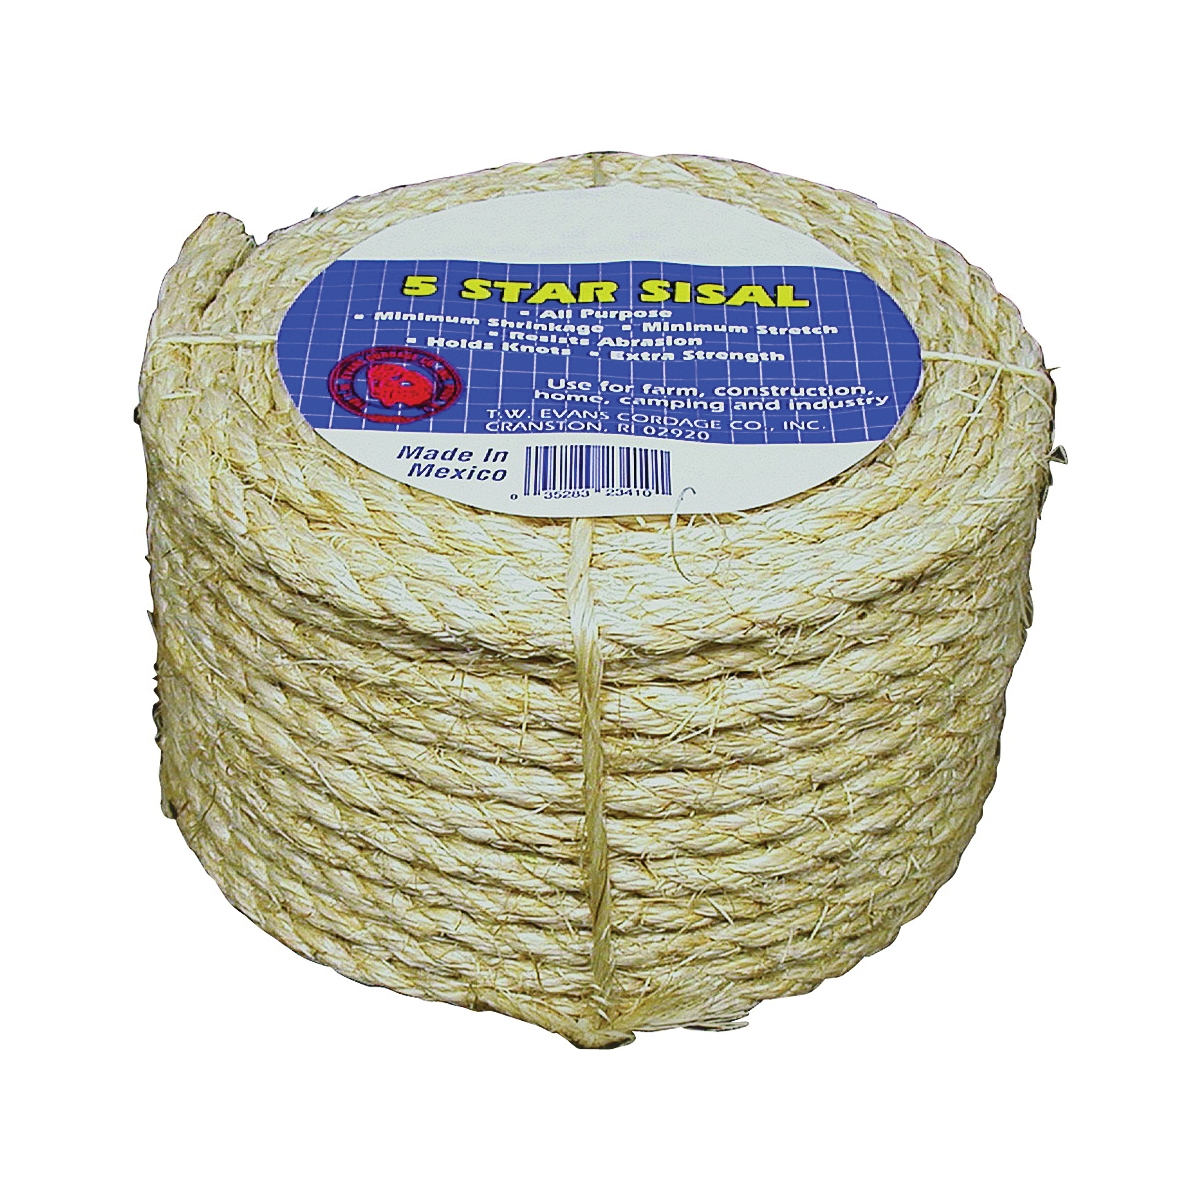 Picture of T.W. Evans Cordage 22-400 Fiber Rope, 3/8 in Dia, 732 ft L, Sisal, Natural, Coil